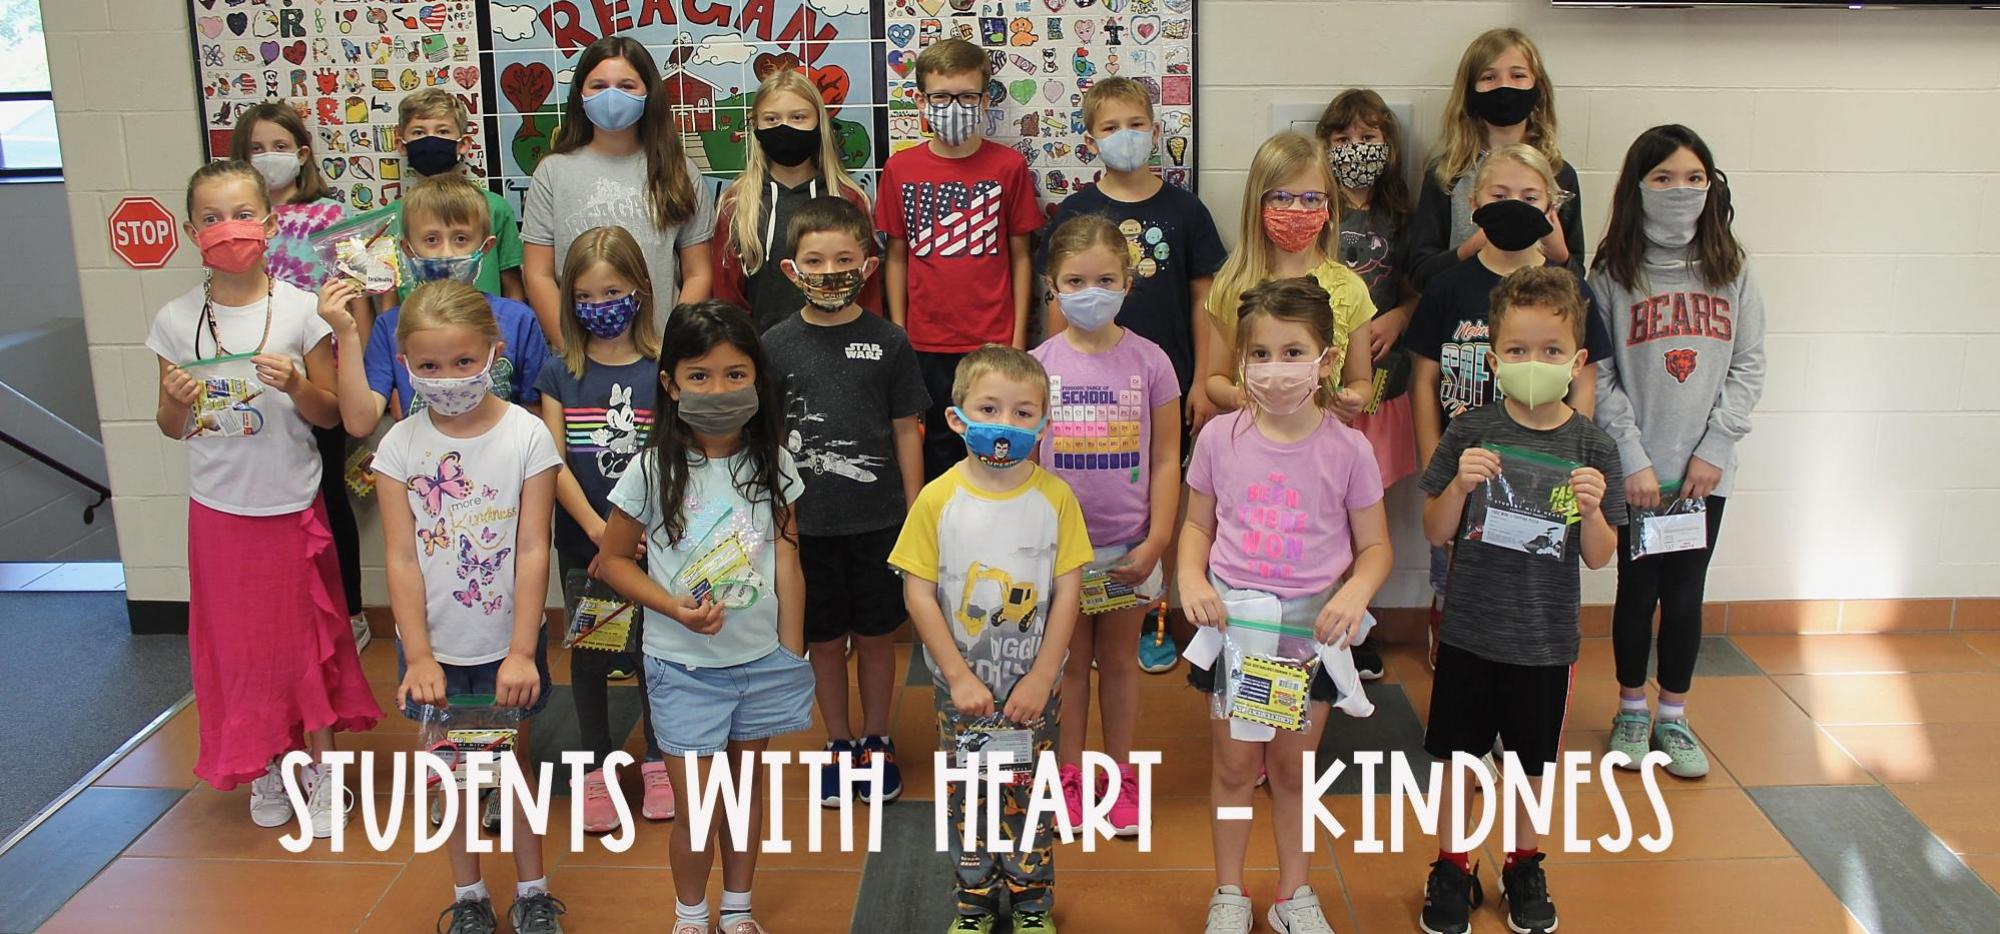 Students with Heart - Kindness